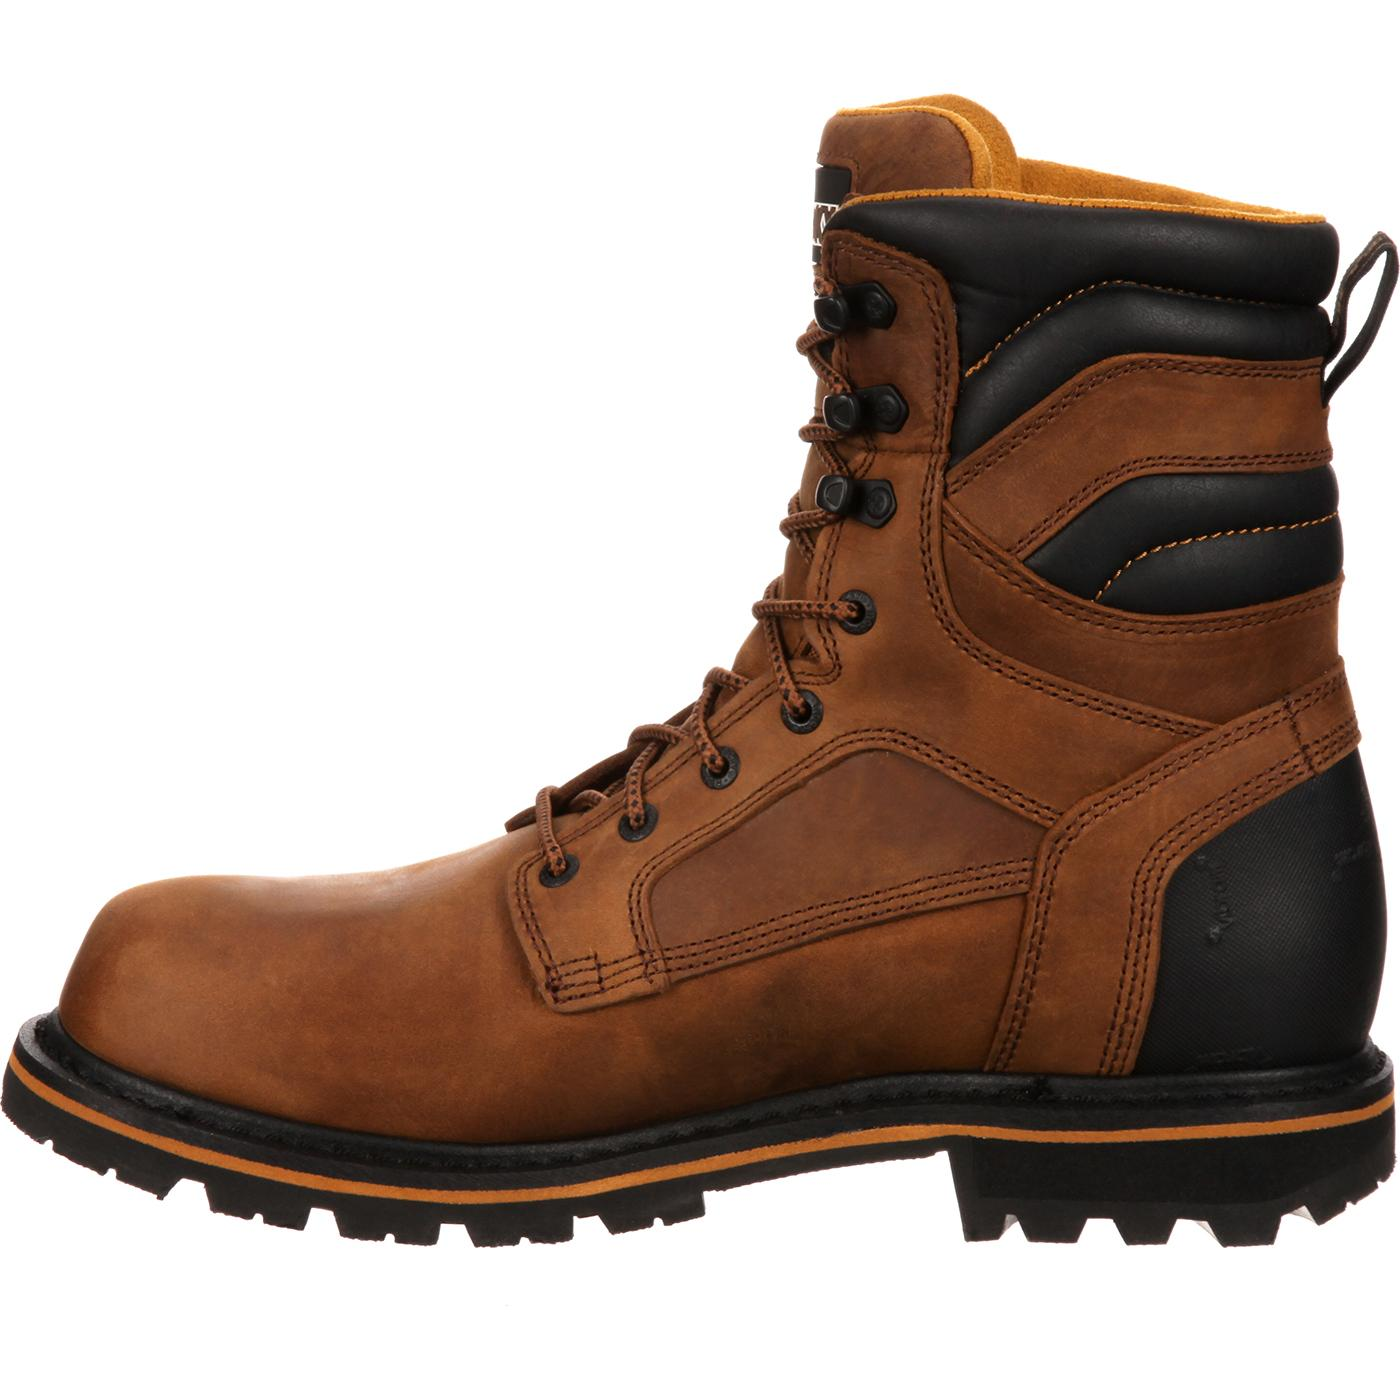 Rocky Mens Brown Boot Boots Governor 8 Insulated Gore Tex Work